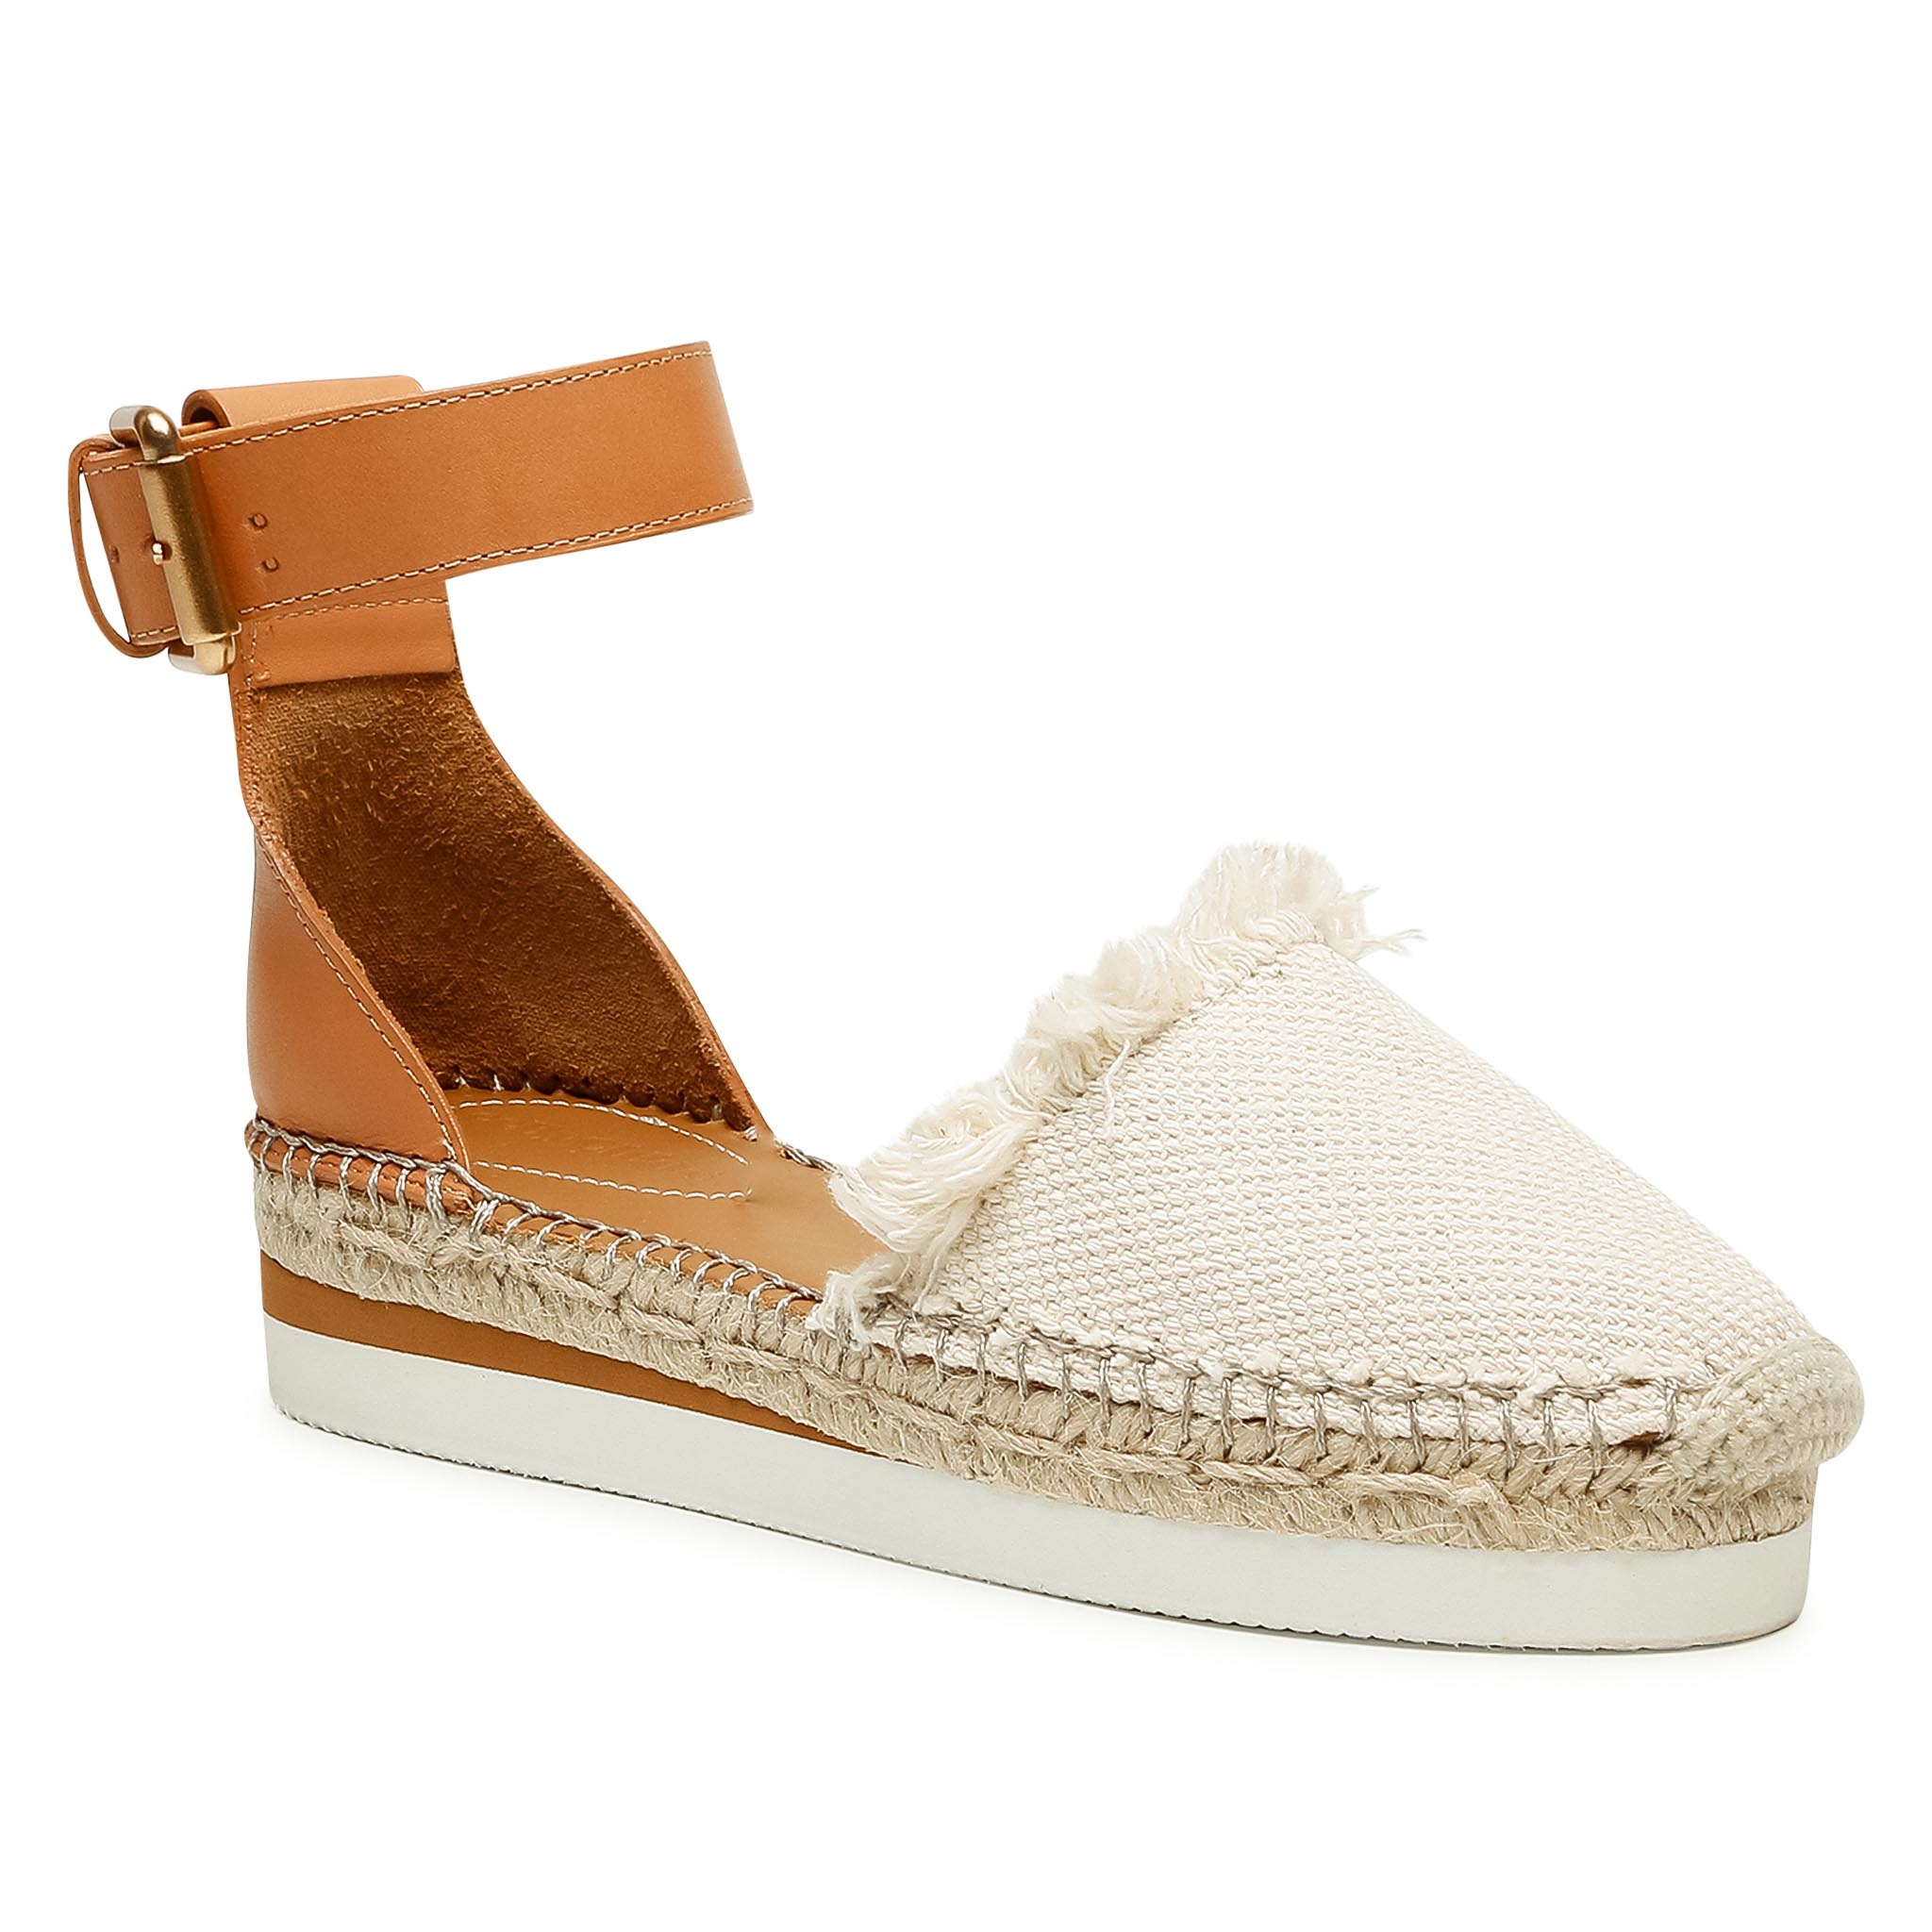 Image of Espadrillas SEE BY CHLOÉ - SB28151 Nat Calf 120/Light Rown 517